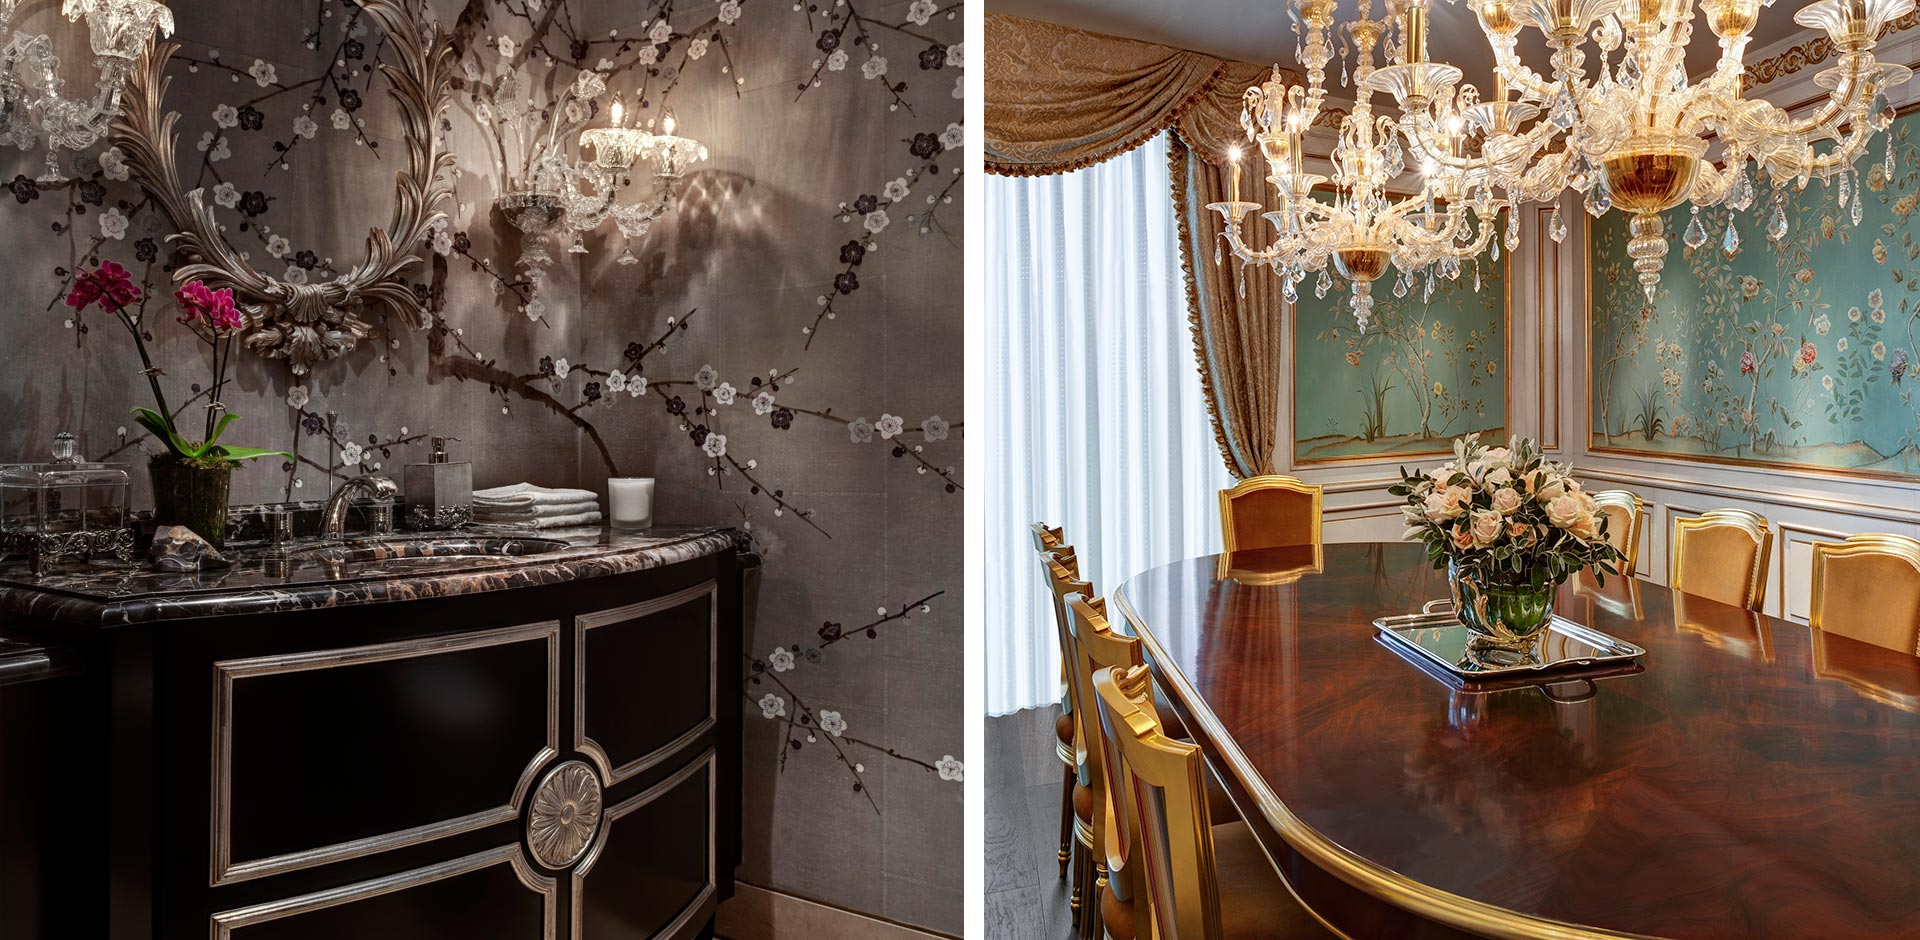 One Hyde Park, London, UK - Dining Room and Powder Room